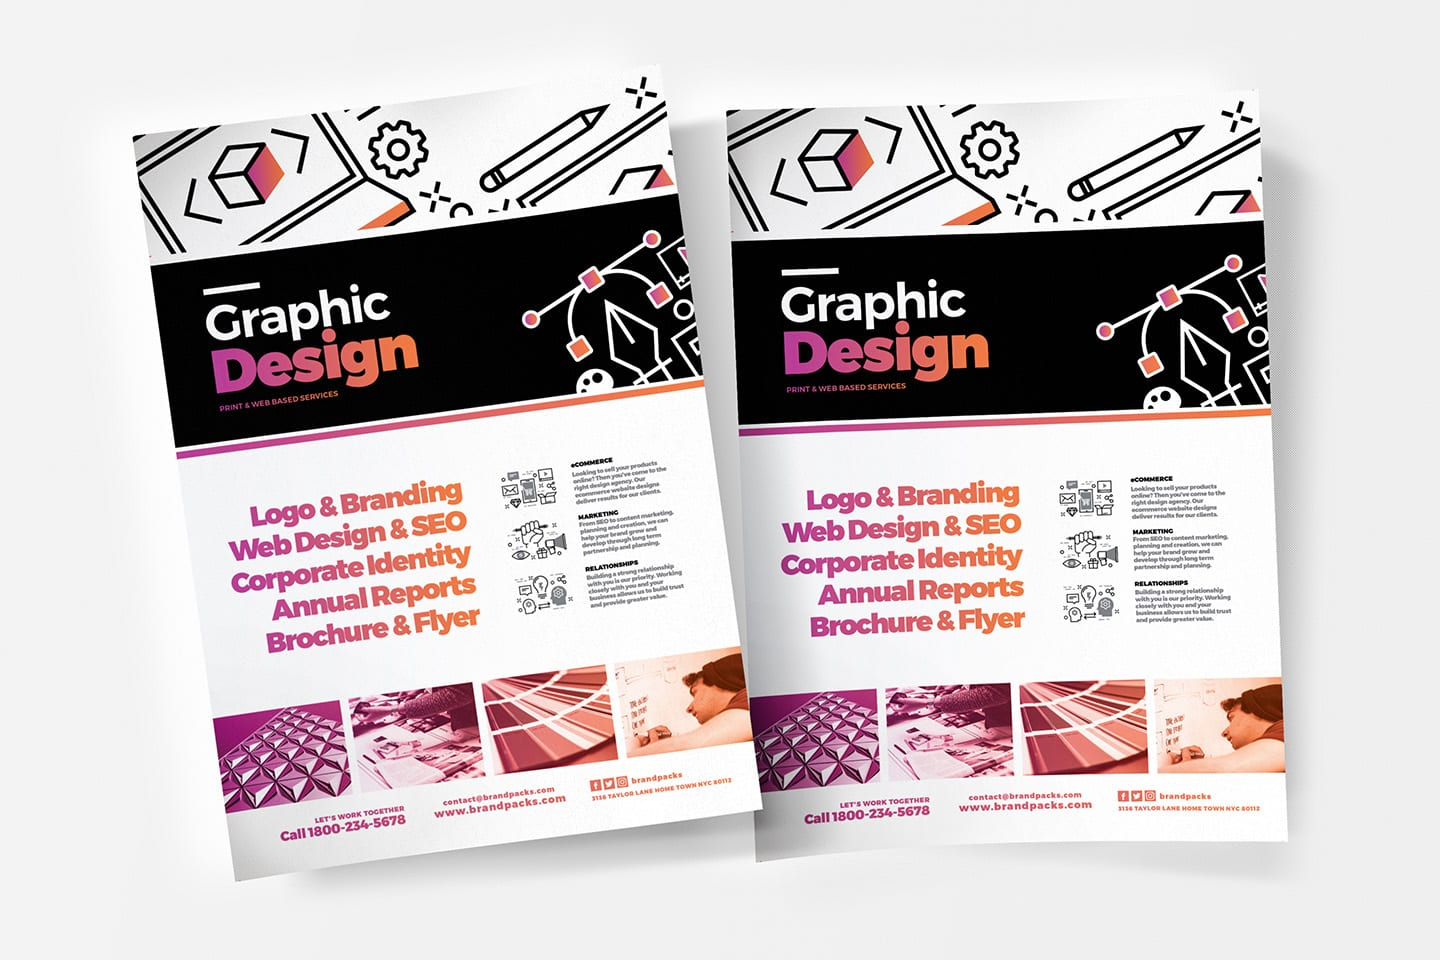 Graphic Design Agency Poster Template for Photoshop & Illustrator